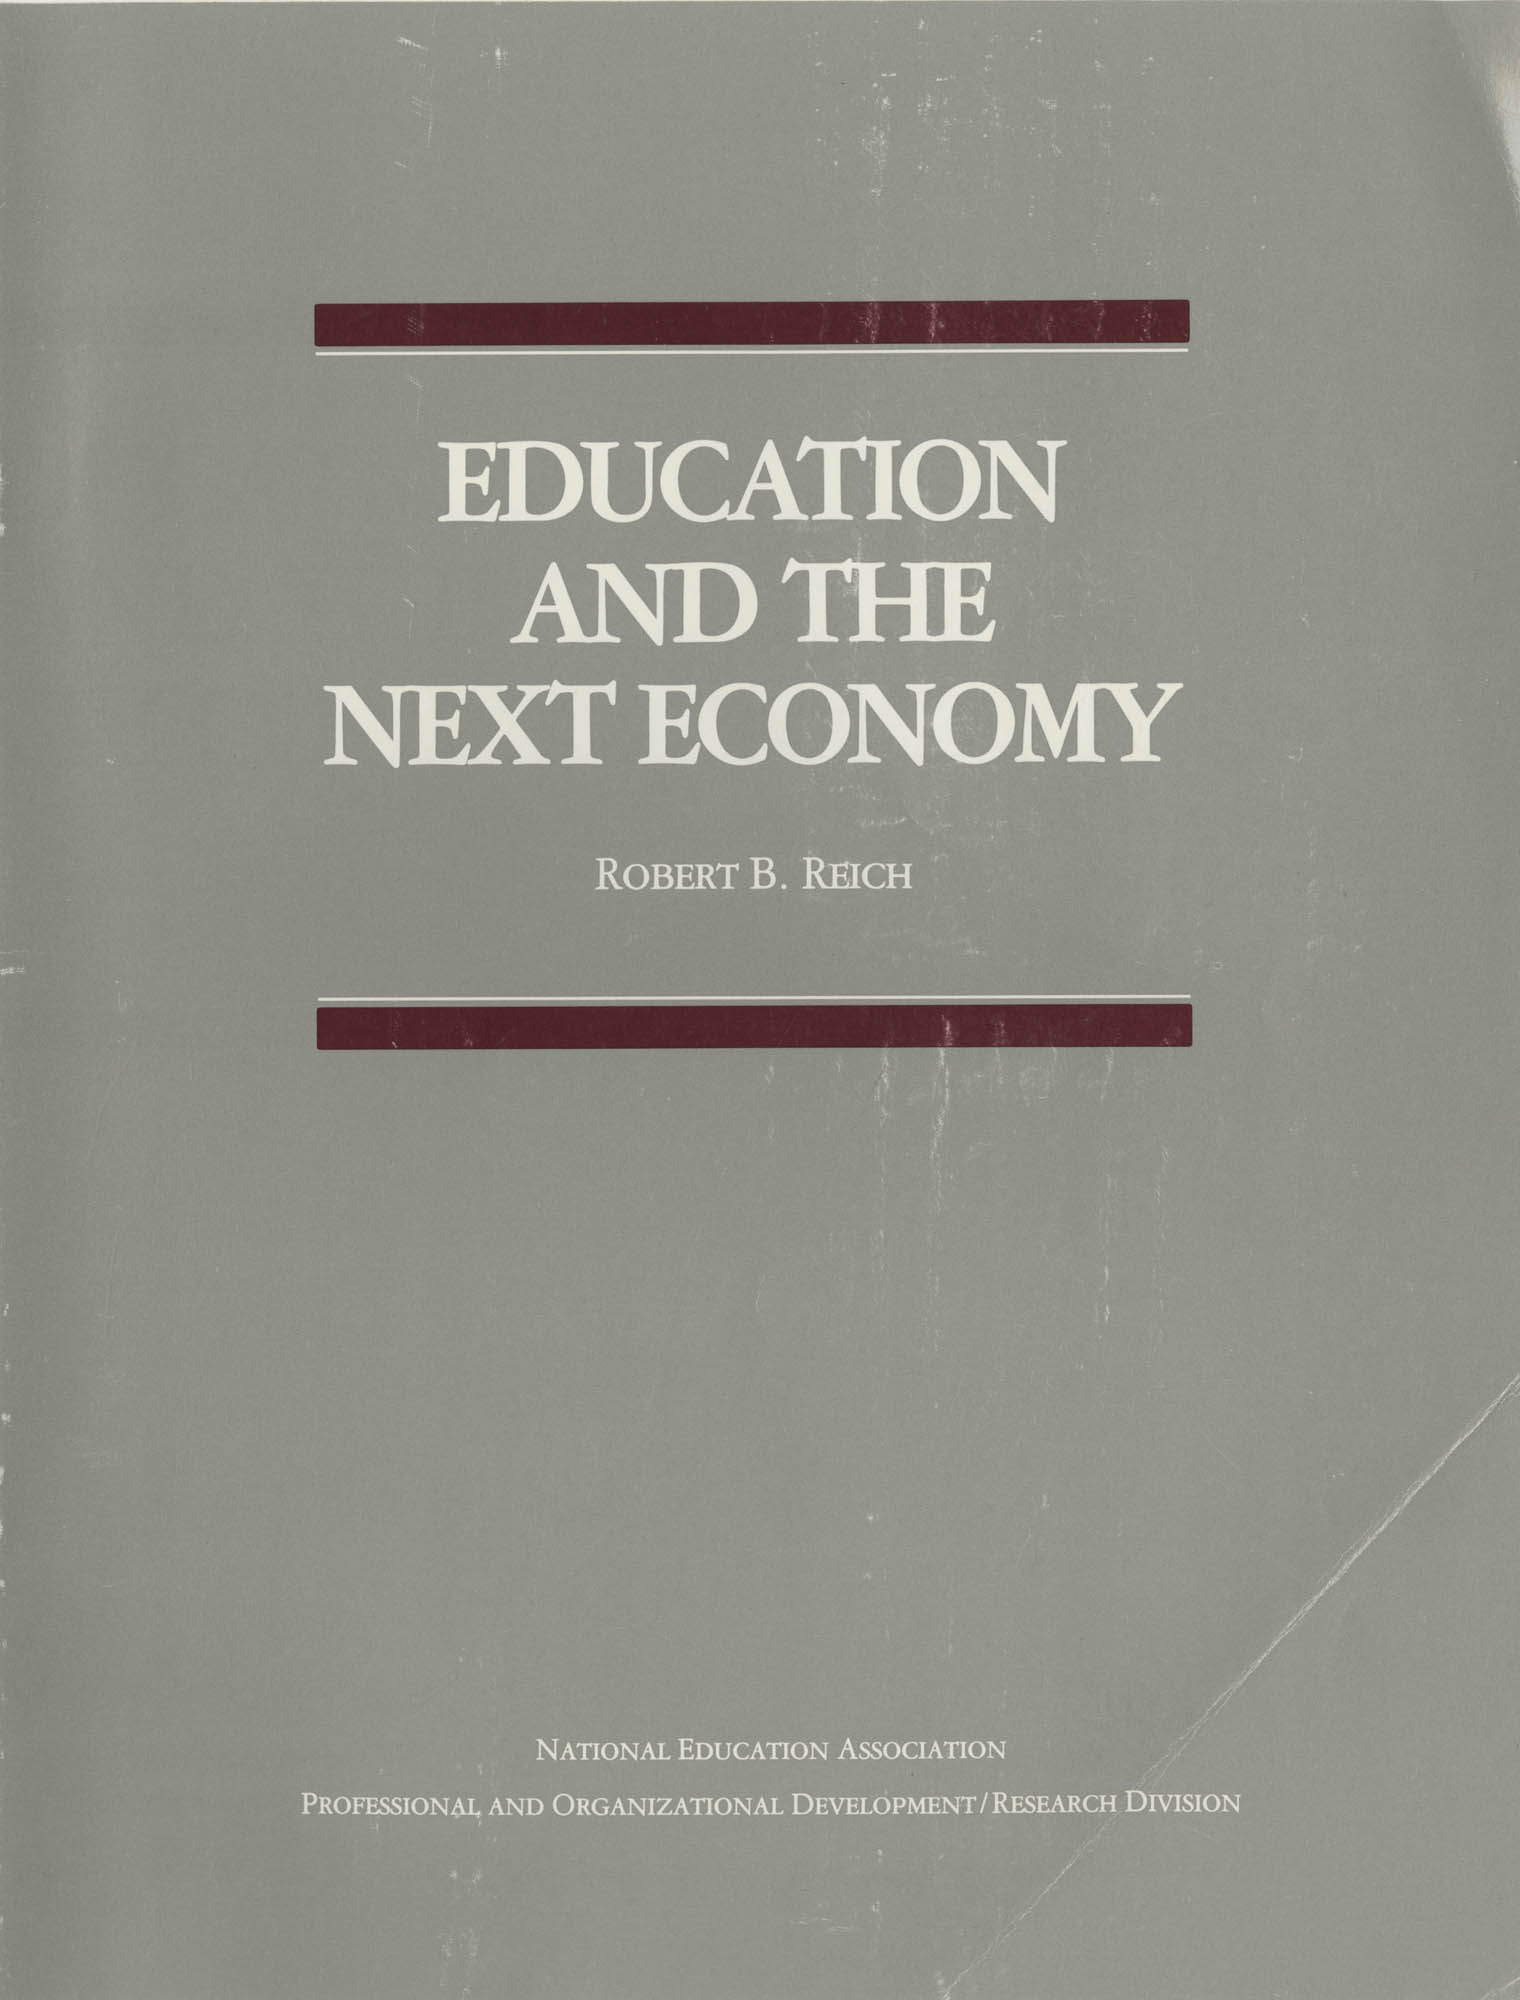 Education and the Next Economy